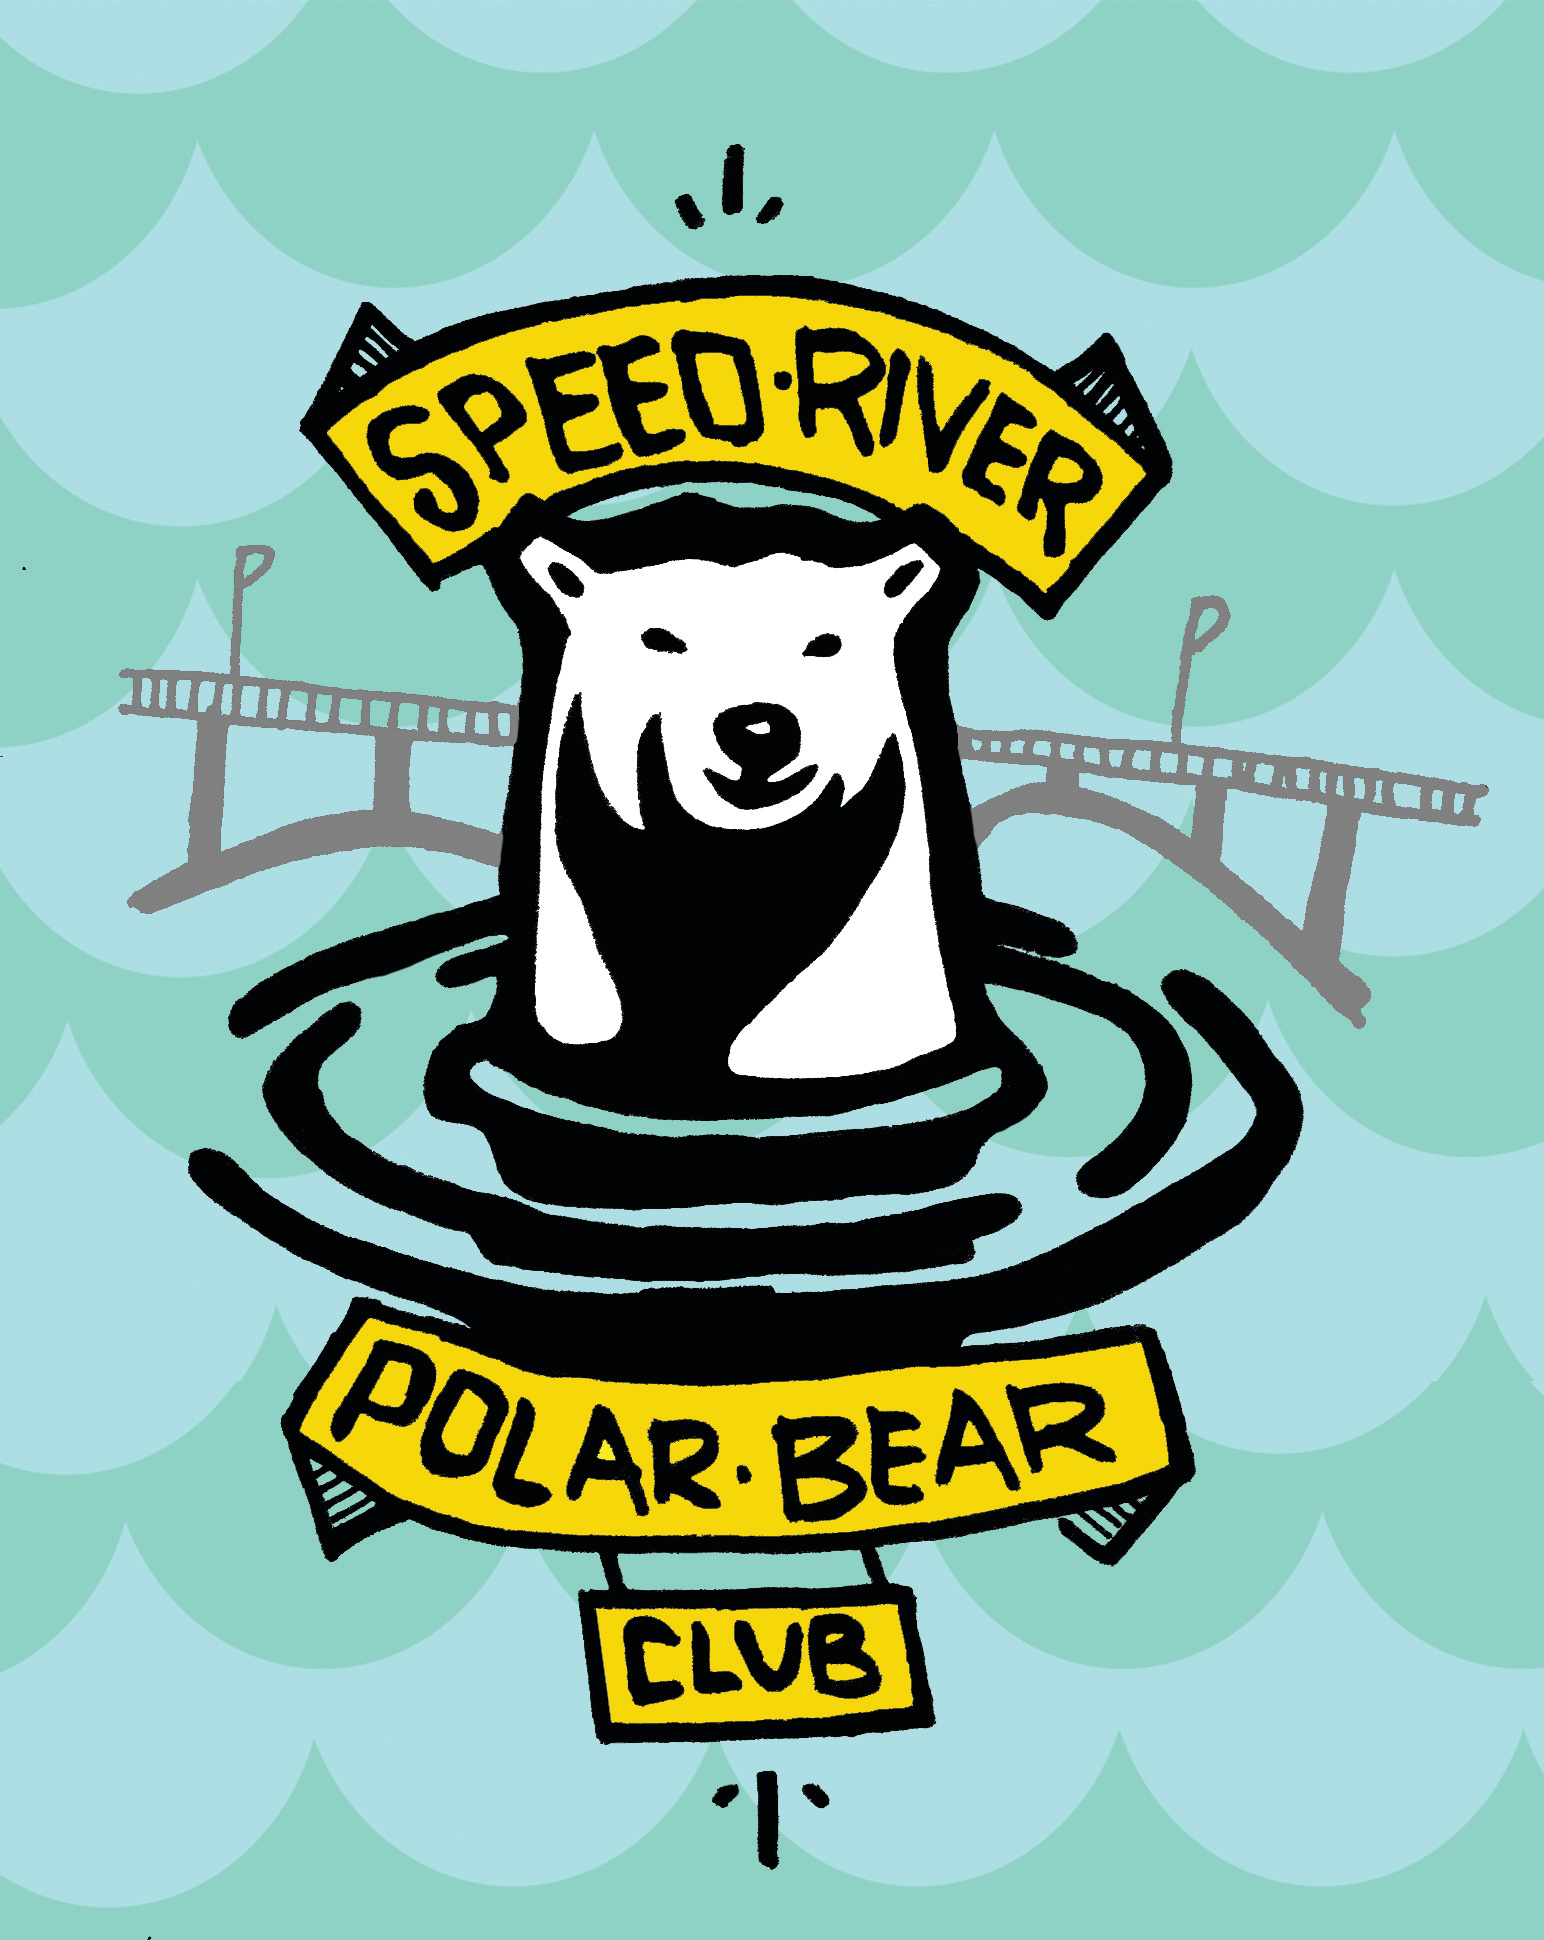 Speed River Polar Bear Club